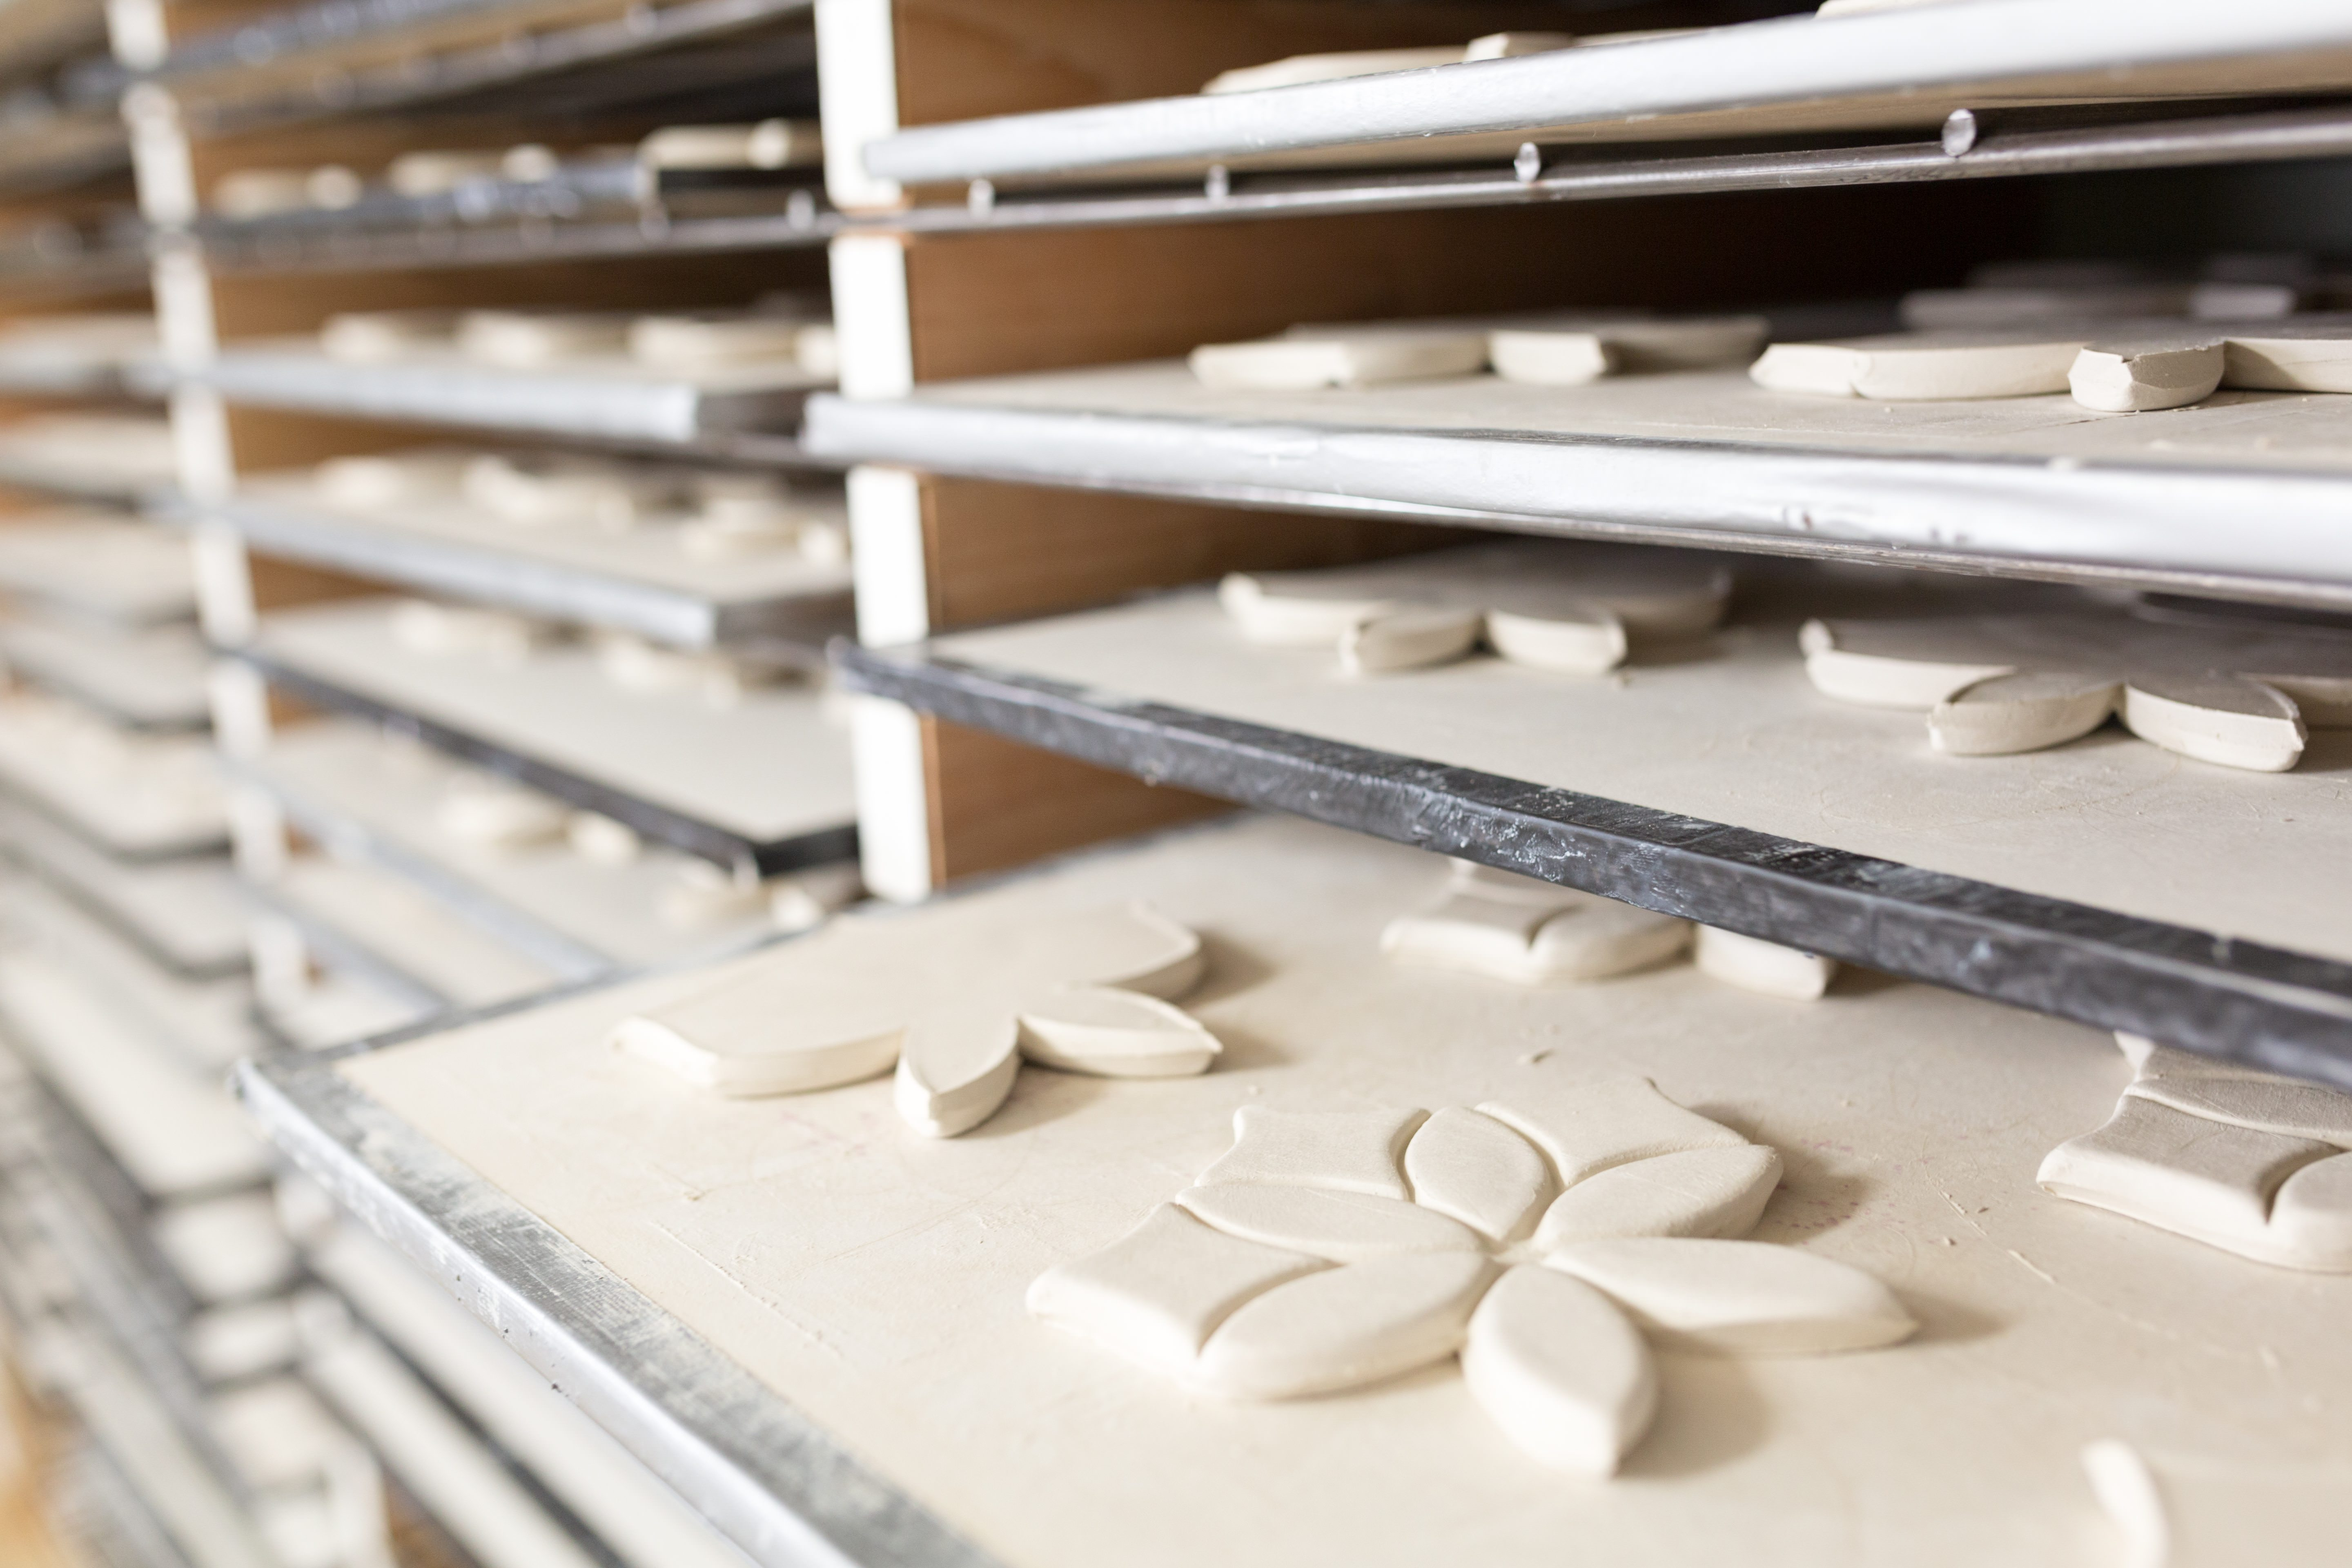 studio-photo-handmade-artisan-tile-on-drying-rack.jpg